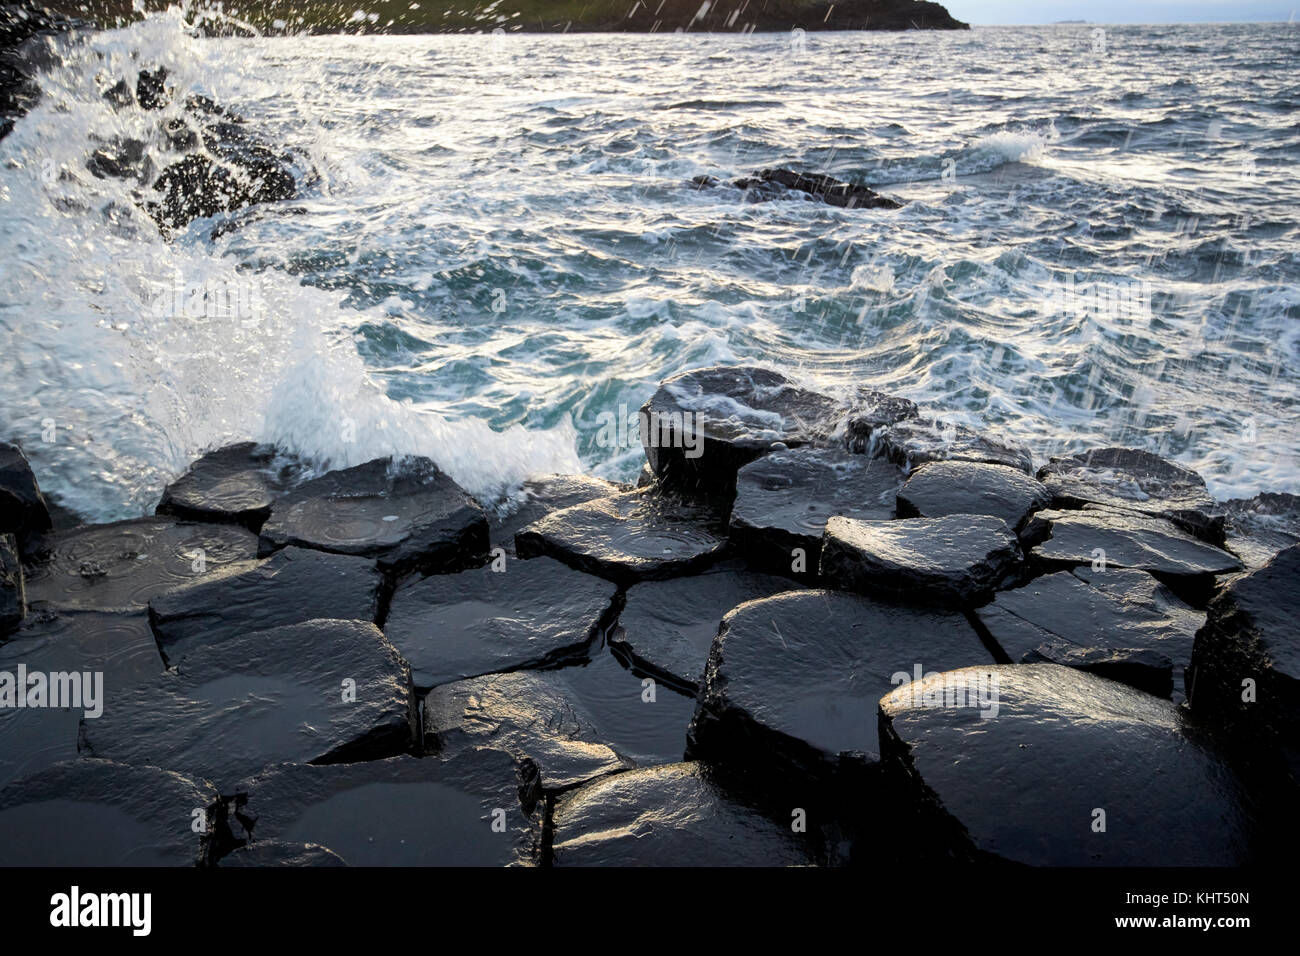 waves breaking over rocks at the Giants Causeway county antrim northern ireland uk - Stock Image